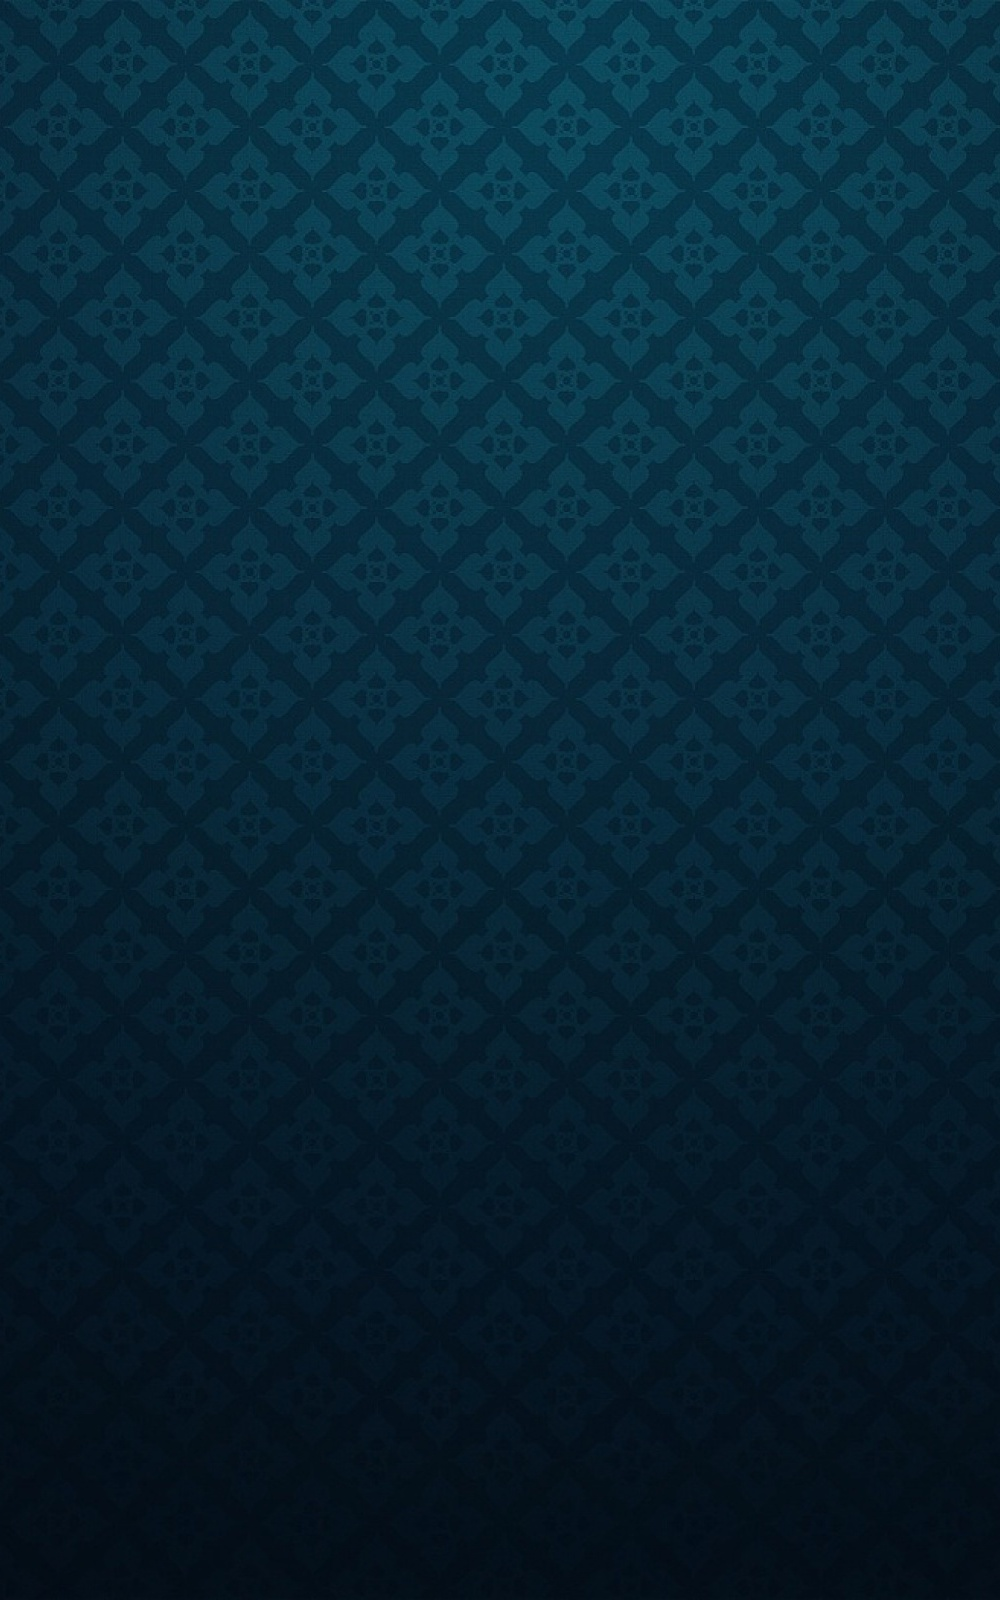 Android Wallpaper Pattern